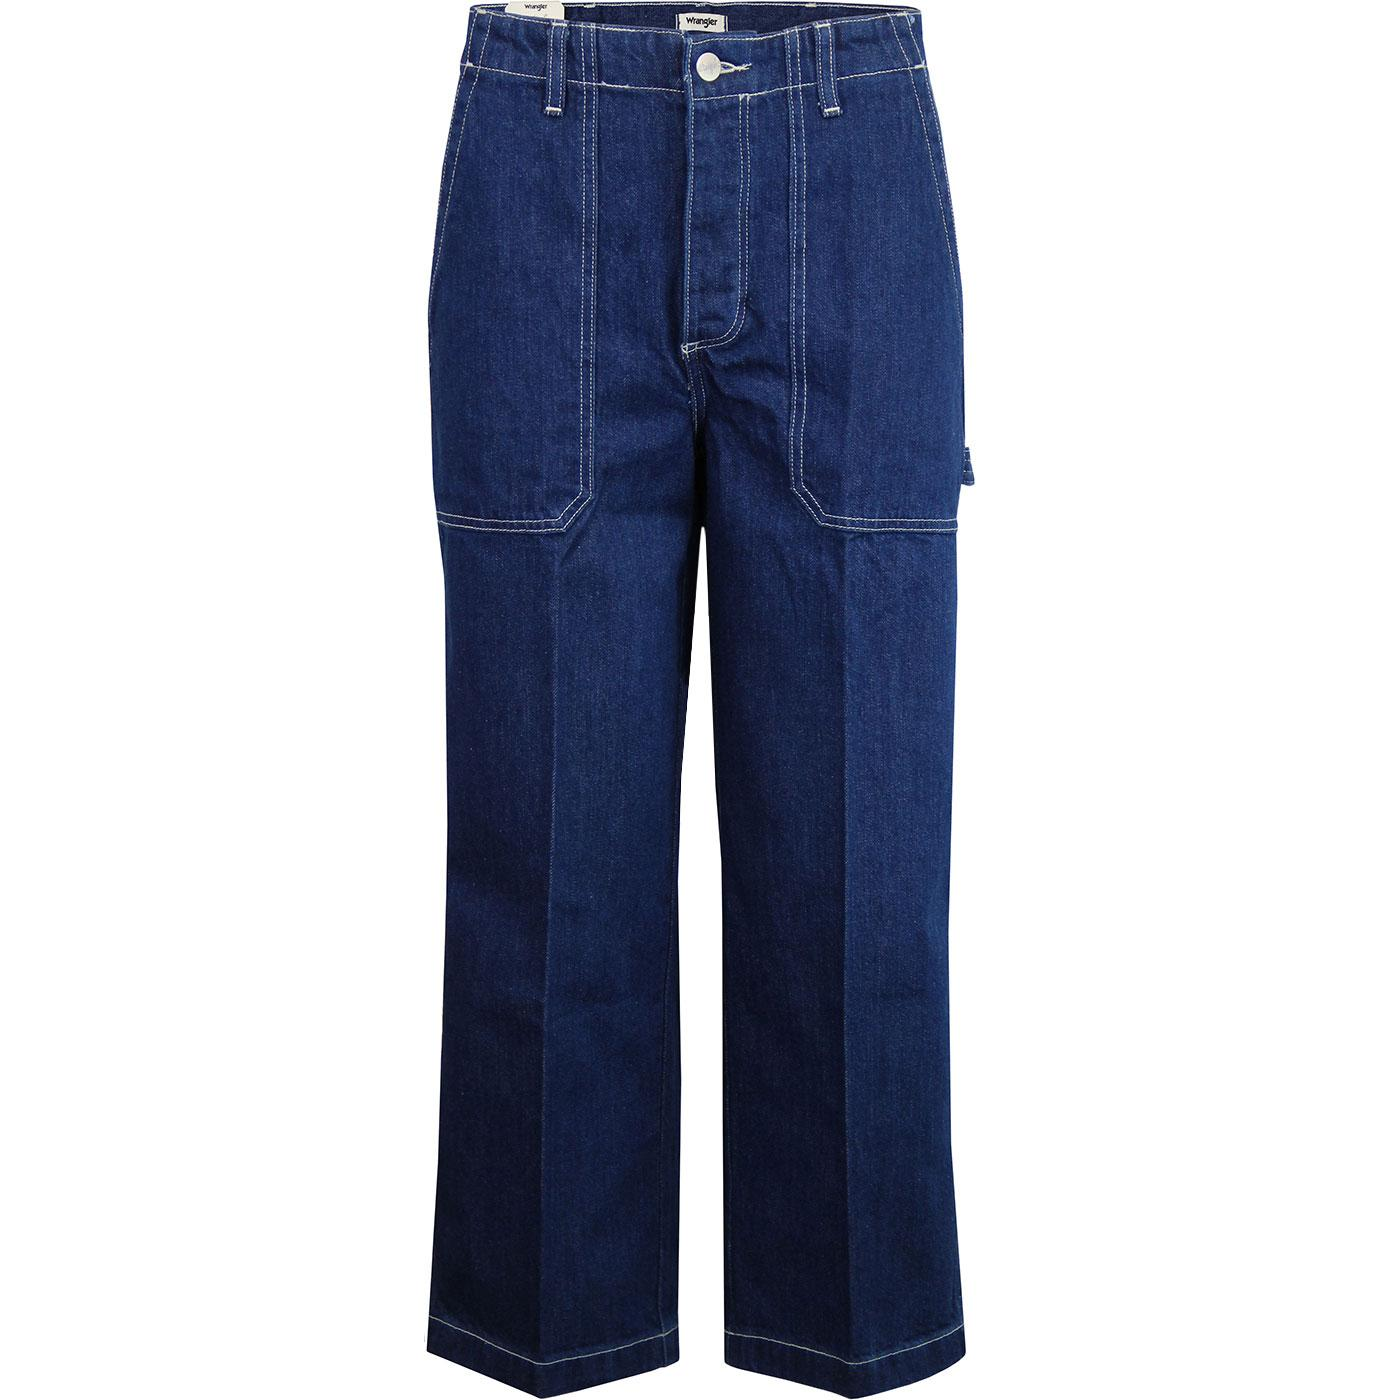 Carpenter Pants WRANGLER Retro 70s Cropped Jeans